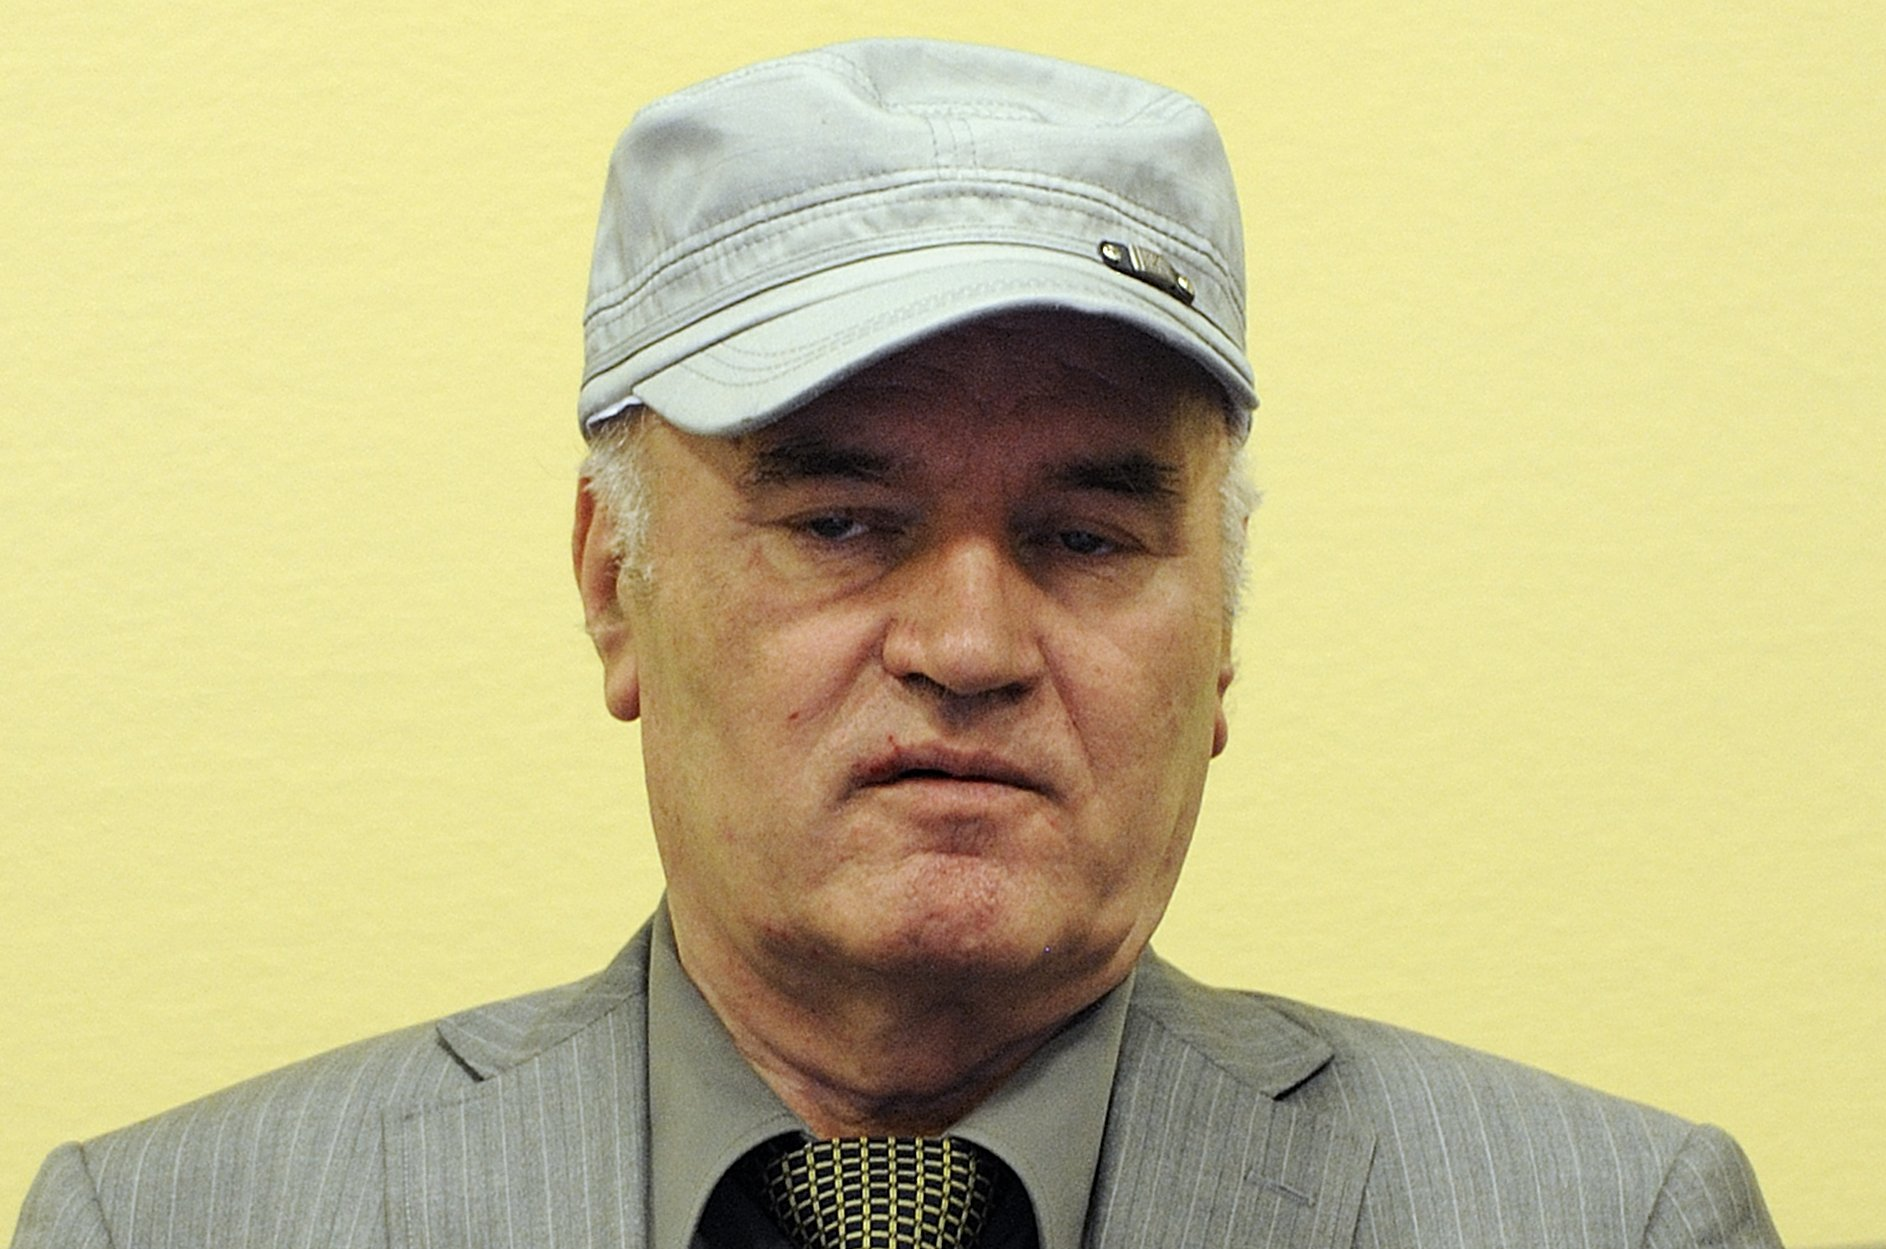 UN prosecutors: Mladic 'called the shots' in Bosnian war